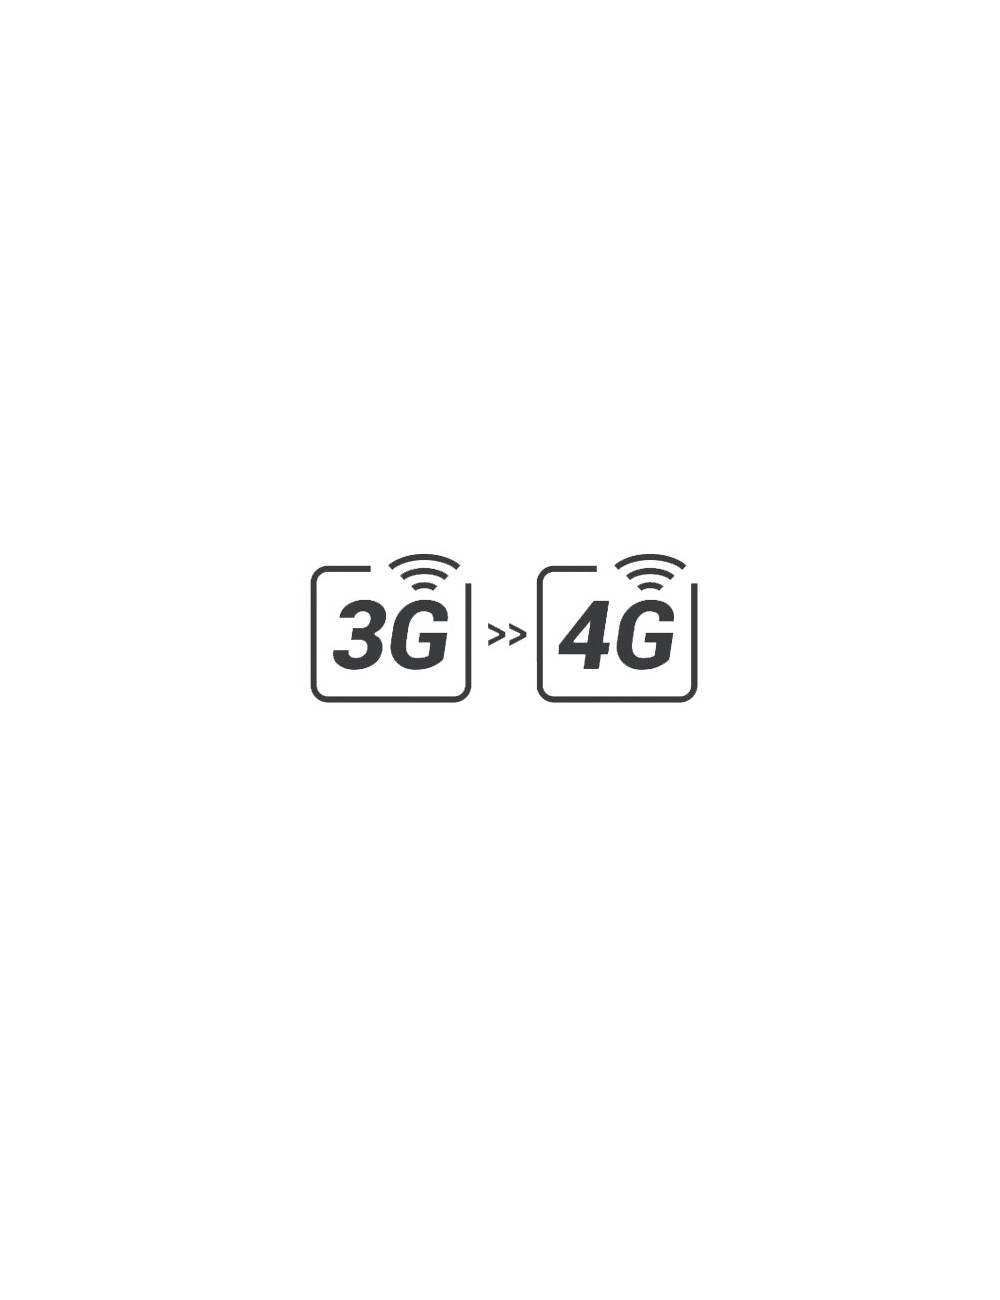 3G to 4G module replacement